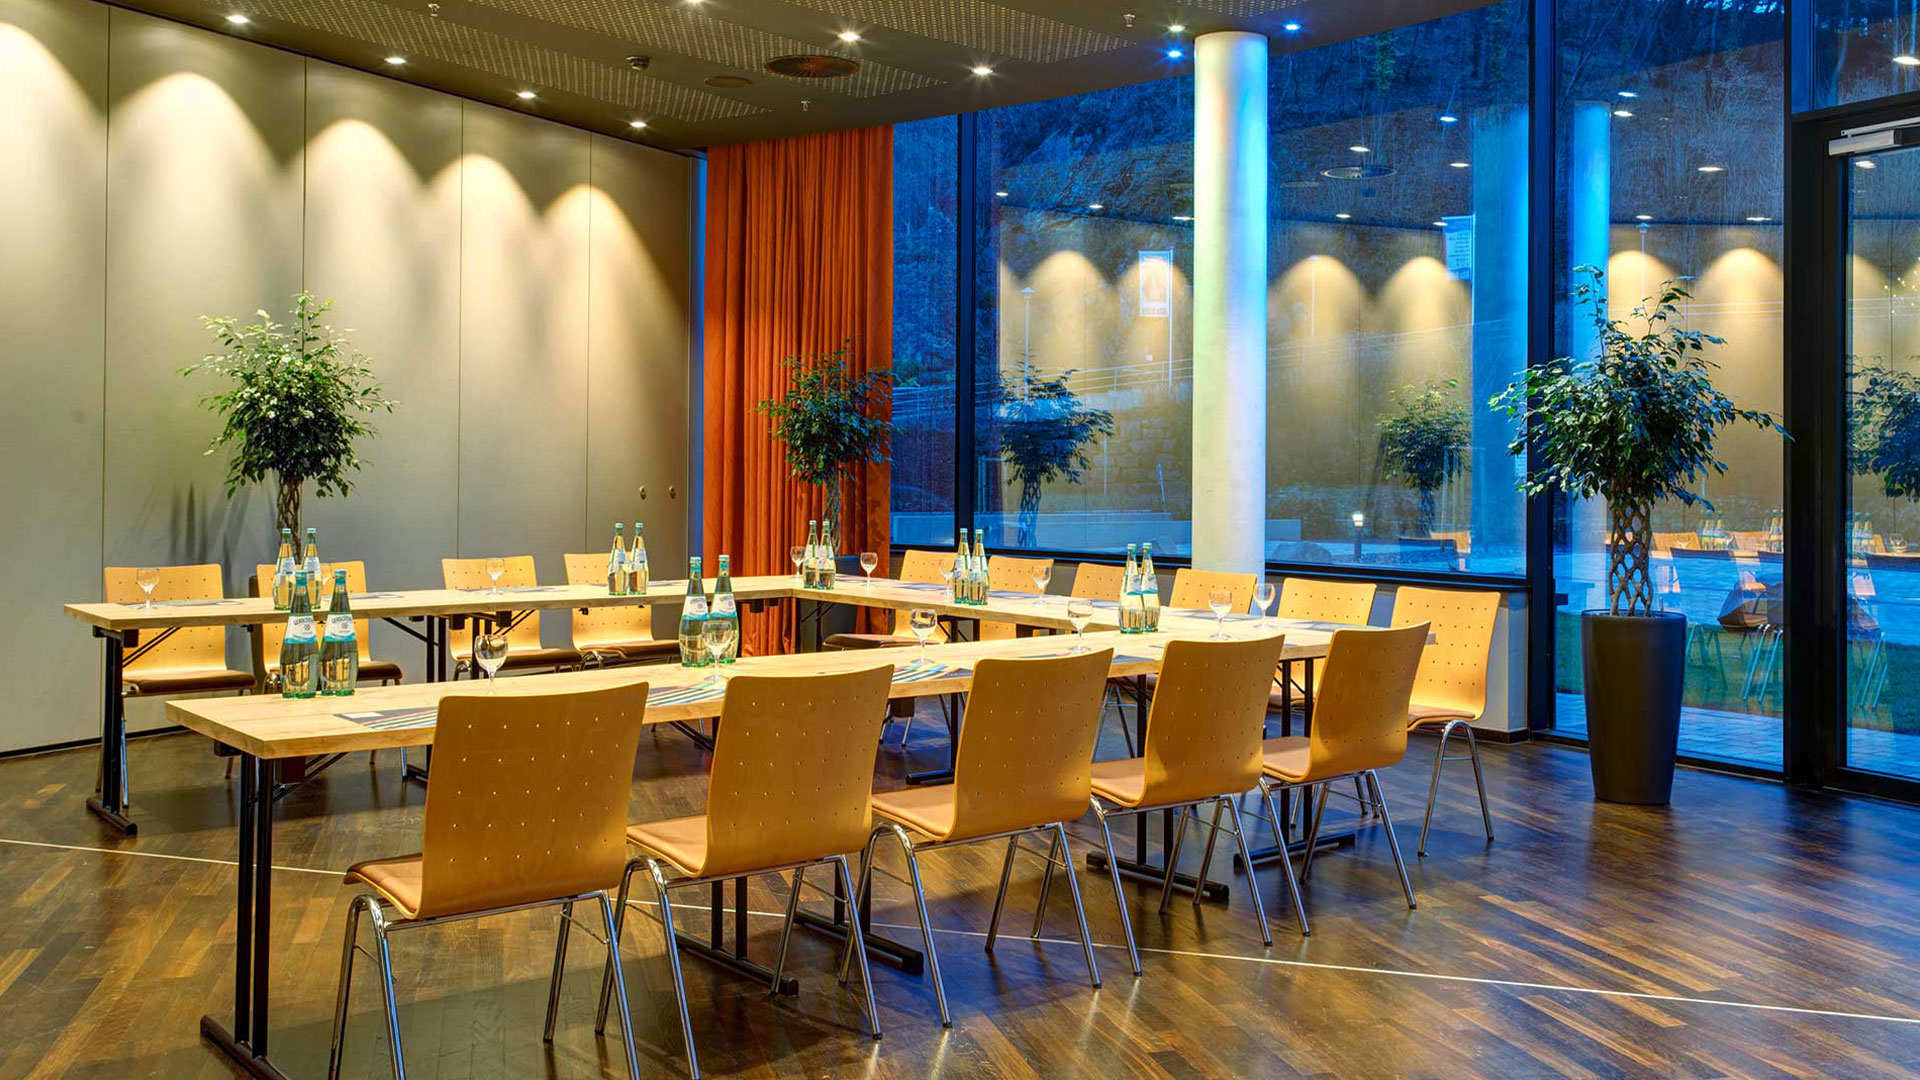 Photo of the conference room - 04 - Hanse Hotel Attendorn